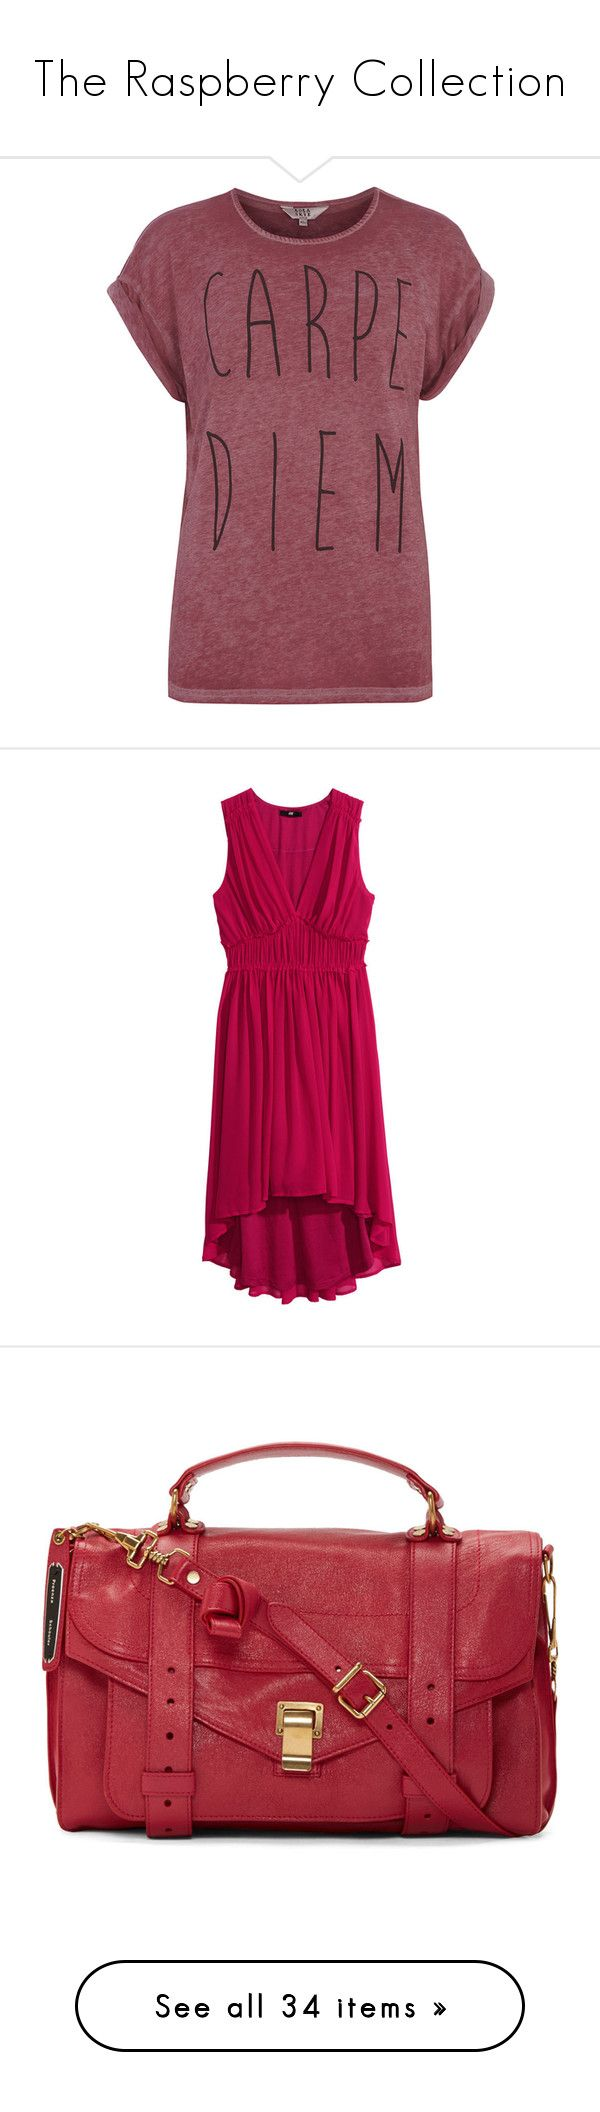 """""""The Raspberry Collection"""" by mon-ami-louis ❤ liked on Polyvore featuring raspberry, tops, t-shirts, shirts, tees, pink, slouchy tee, pink short sleeve shirt, red t shirt and polyester t shirts"""